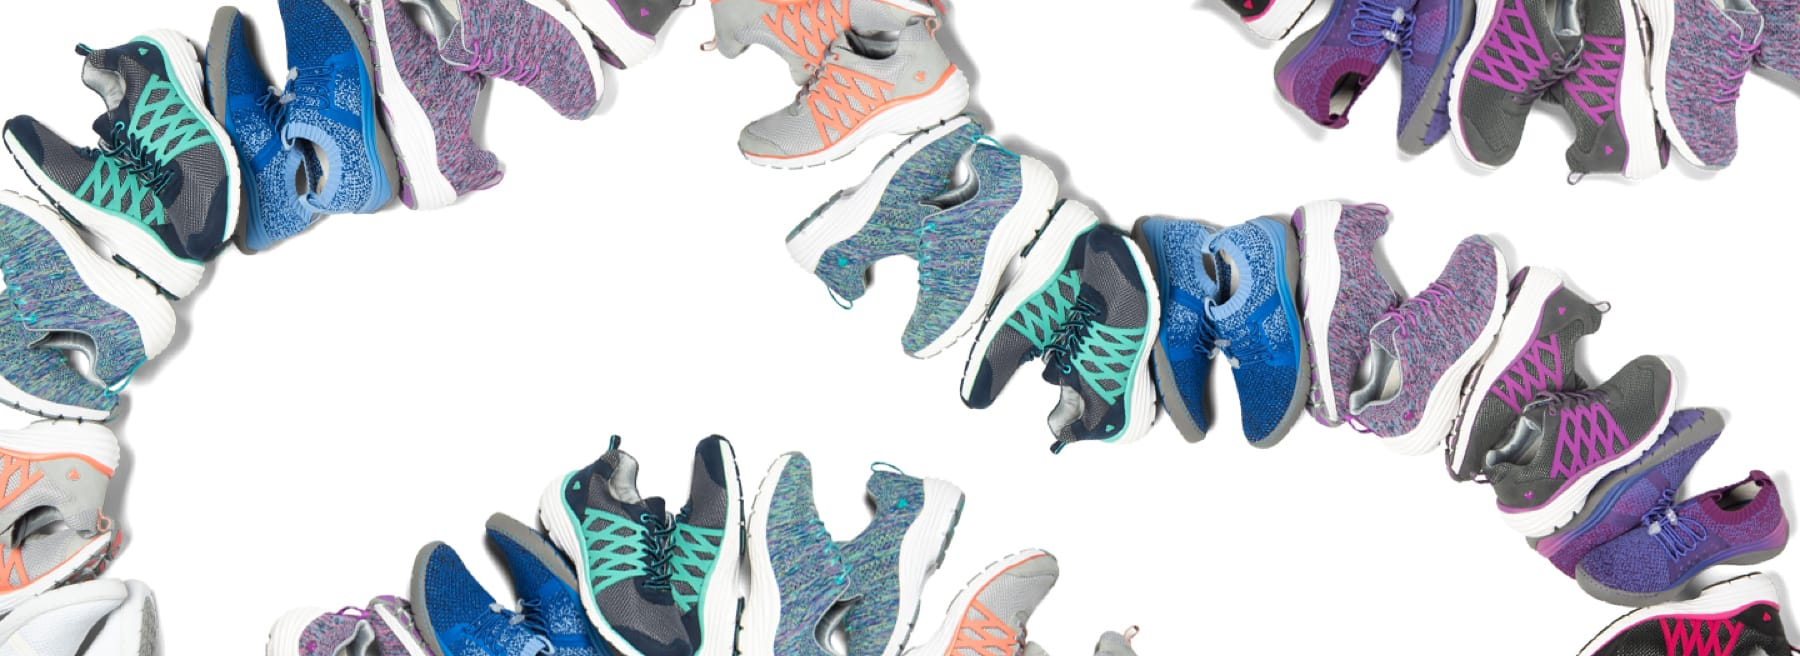 Wave of shoes including featured styles Align Brin in navy & teal, black-pink, grey-purple, and grey/peach, Align Tabor in blue woven and purple woven, and Align Torri in marina blue ombre, orchid ombre, and crisp white. Shop new arrivals.